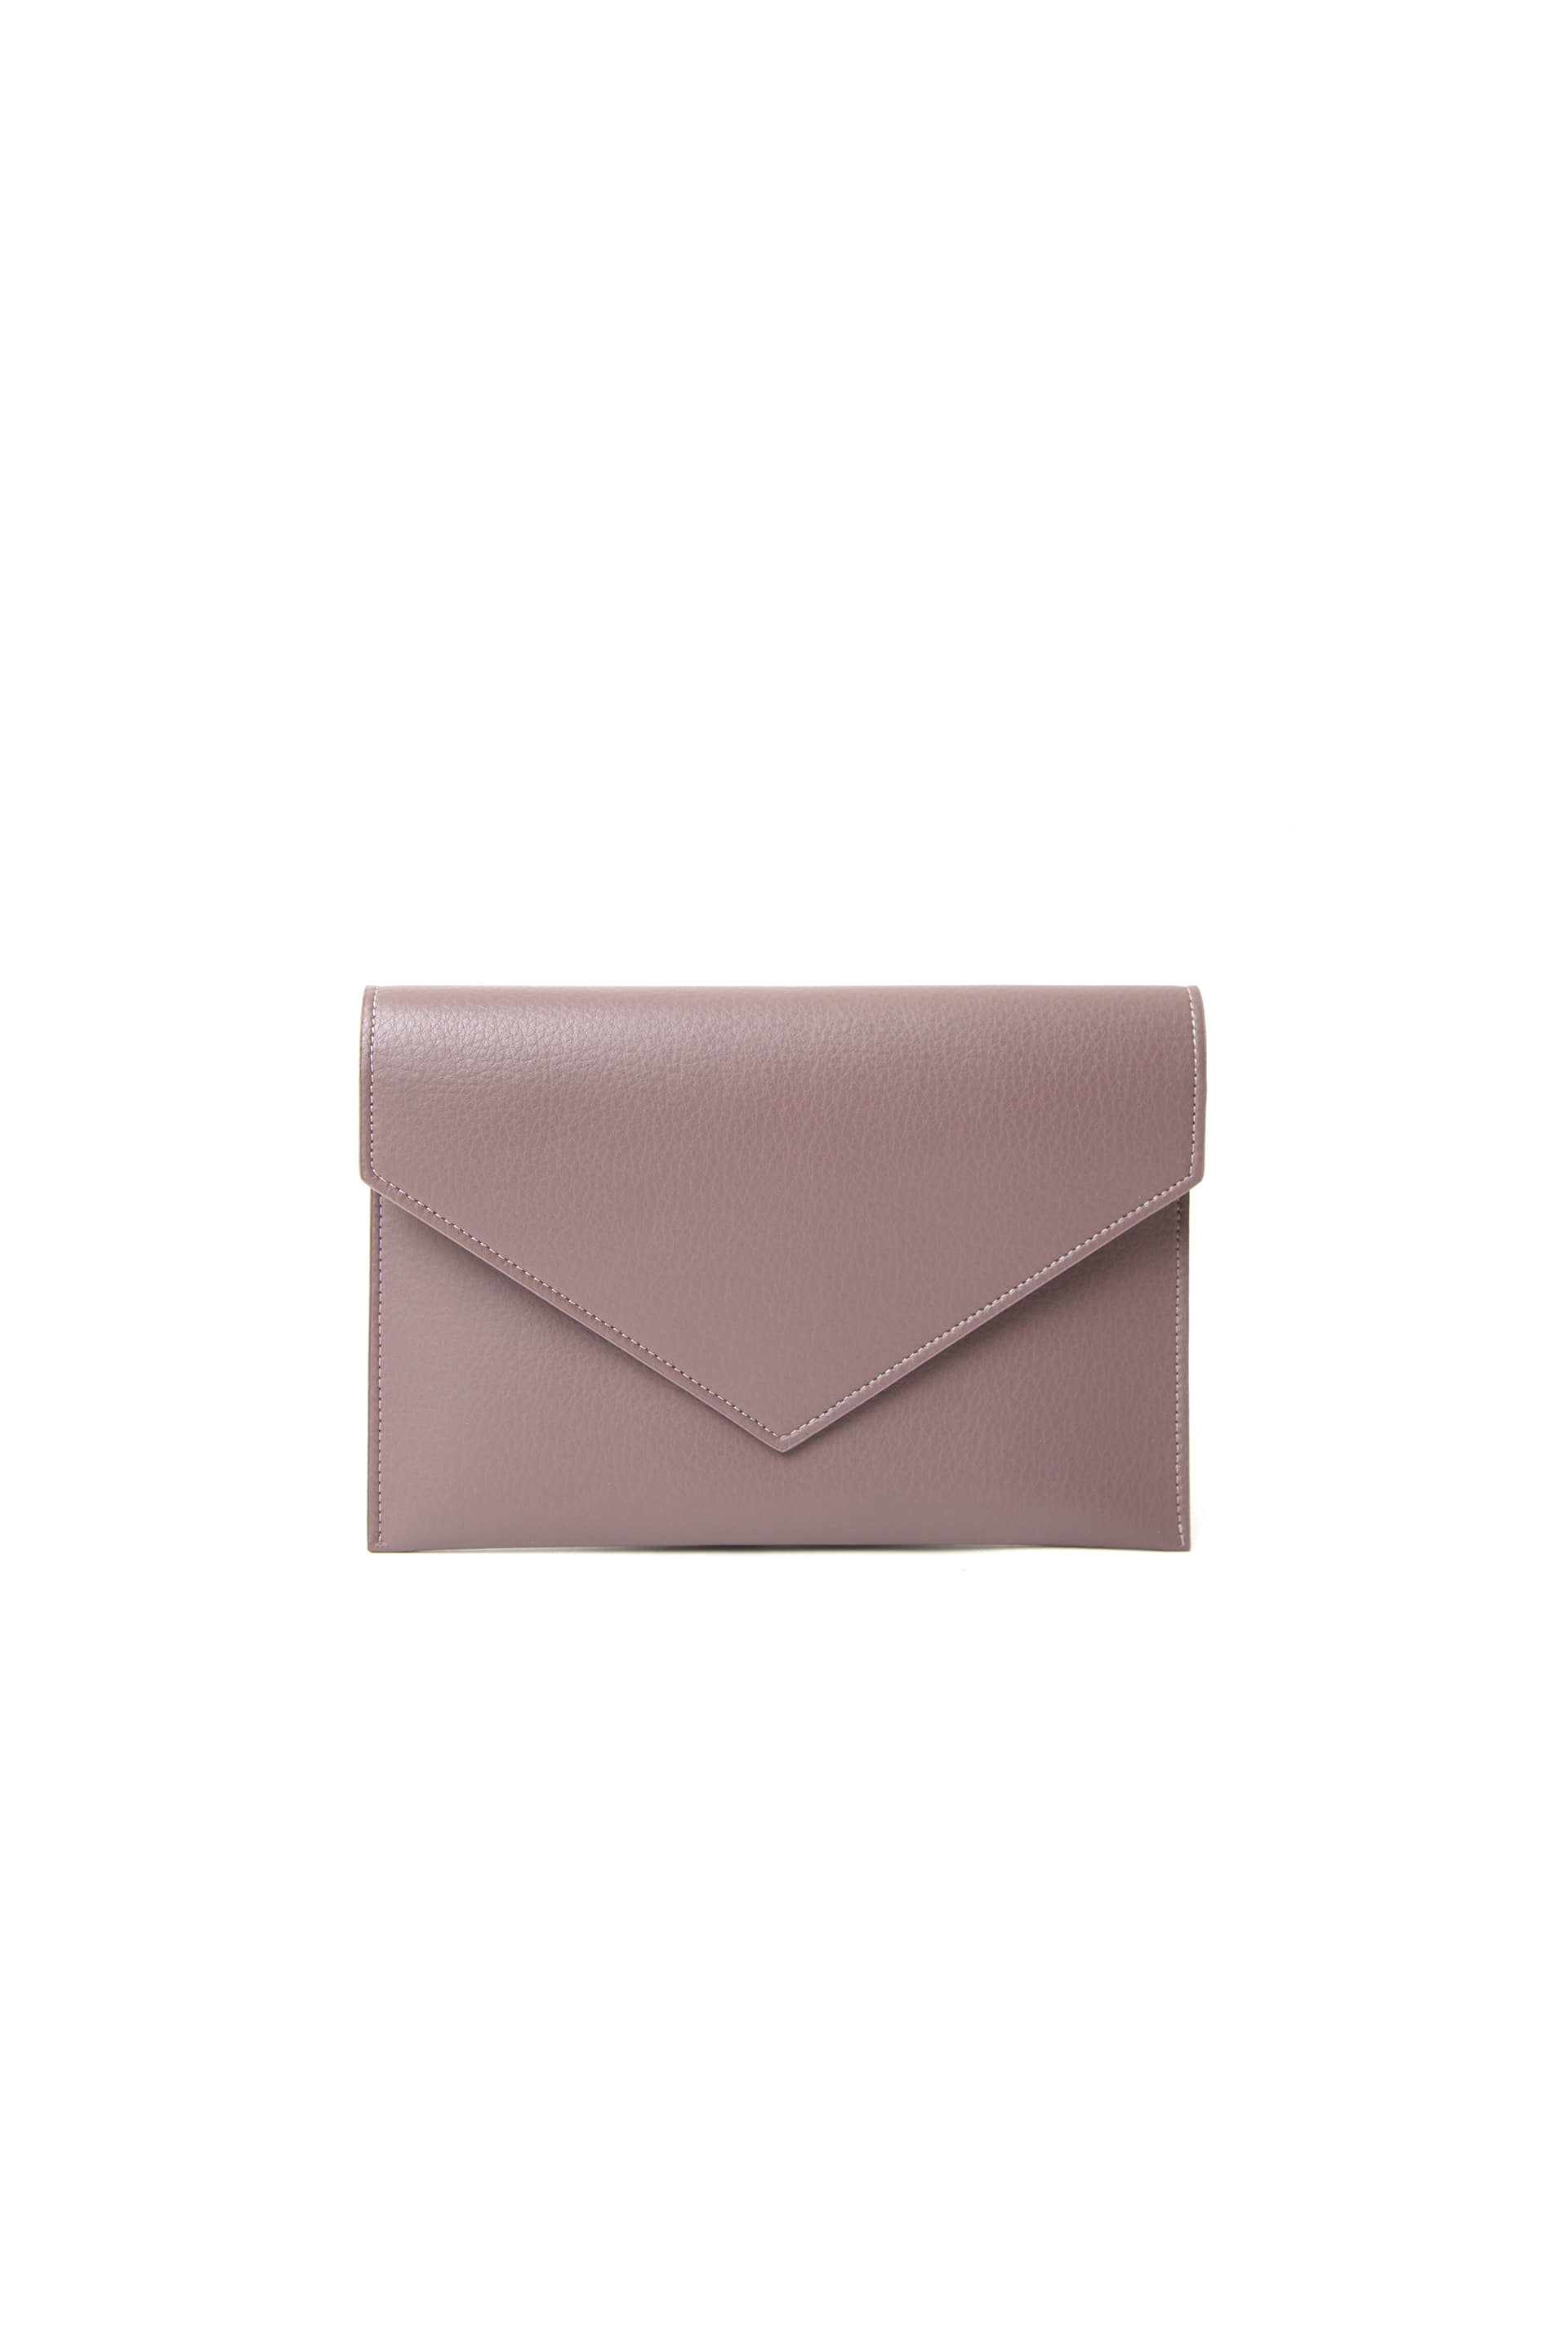 COSMETIC CLUTCH 19 Mulberry Purple